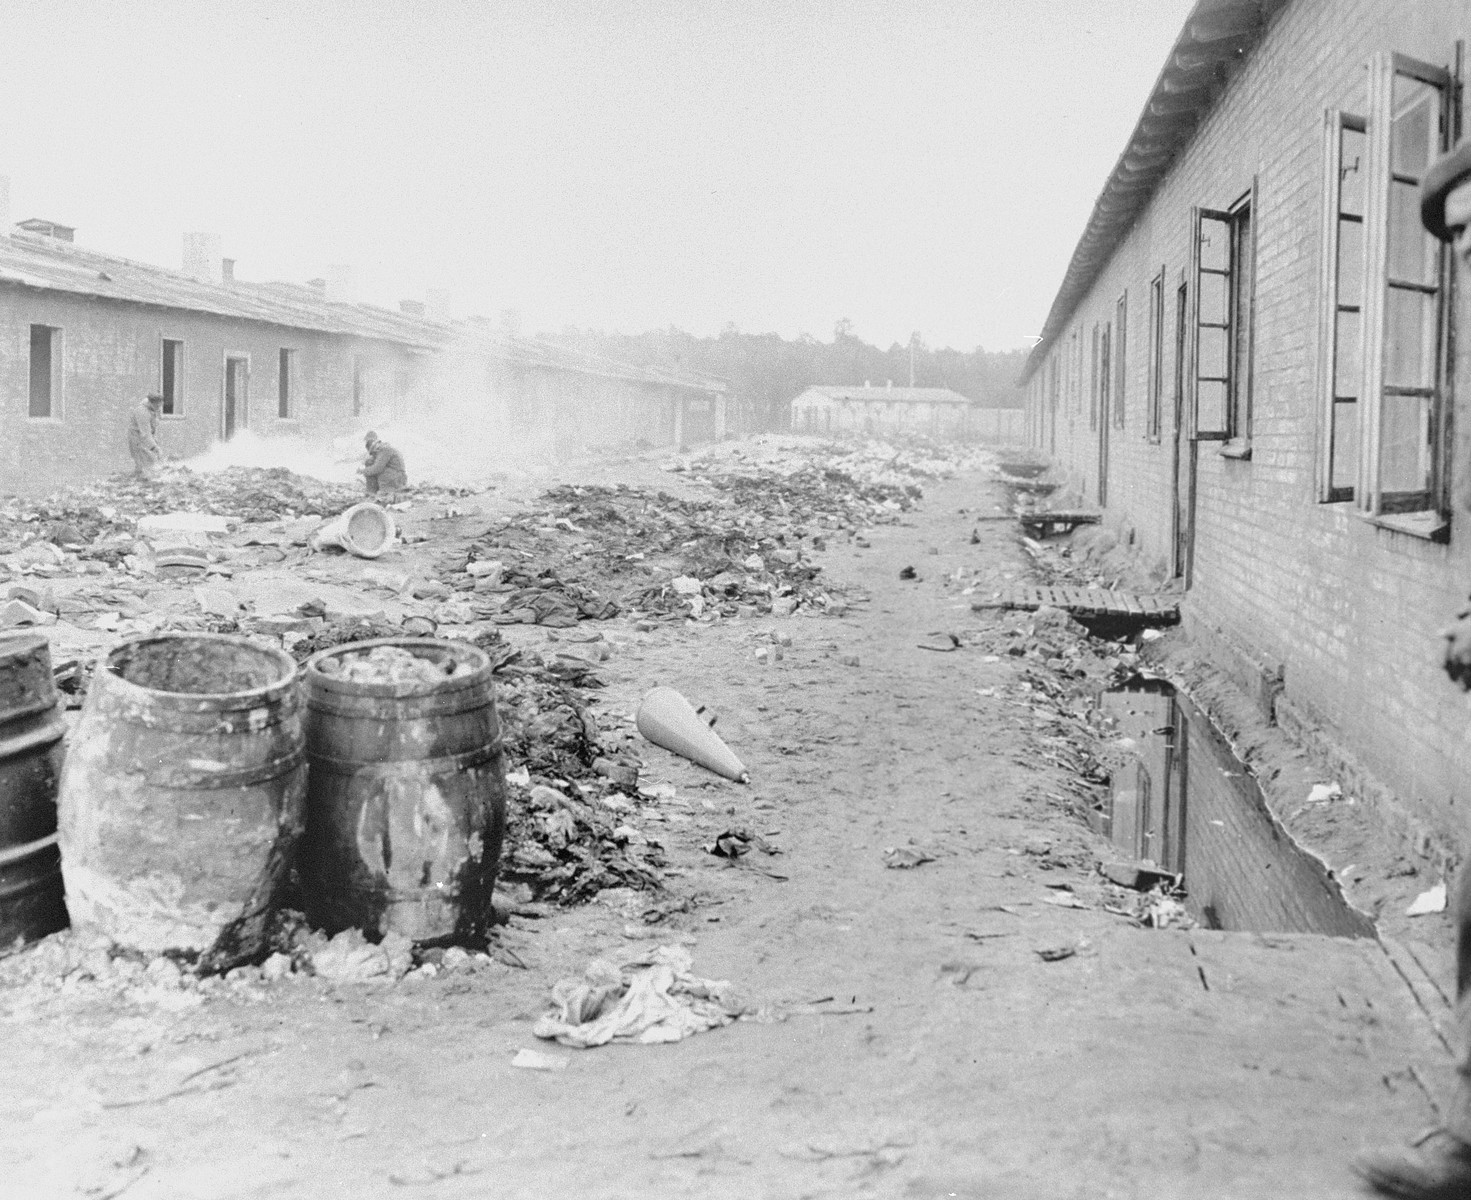 A refuse-filled yard between barracks in Bergen-Belsen concentration camp.